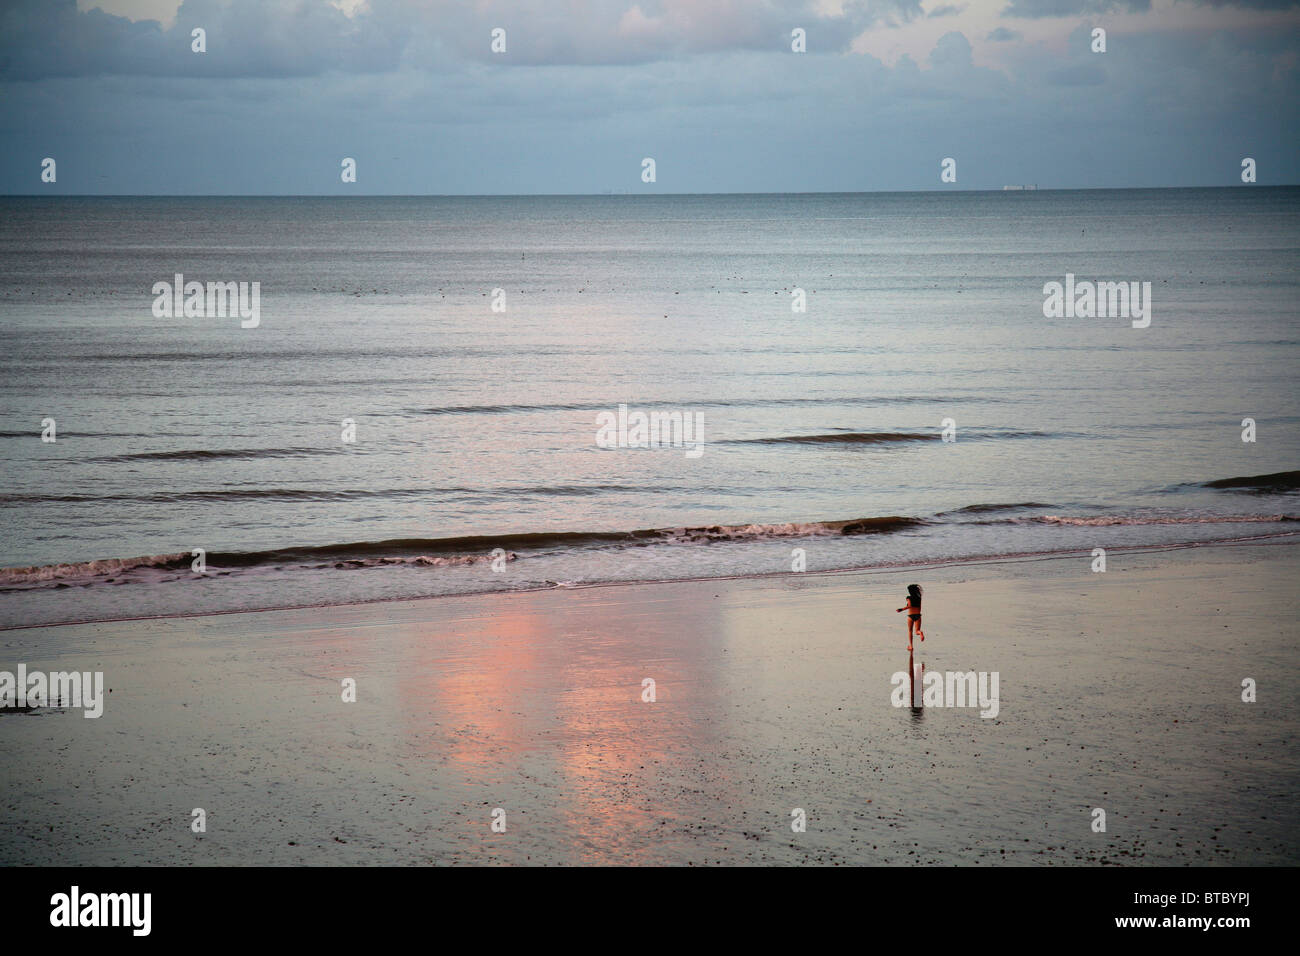 The sea at Hastings, East Sussex with a lone figure running toward the waters' edge. Stock Photo